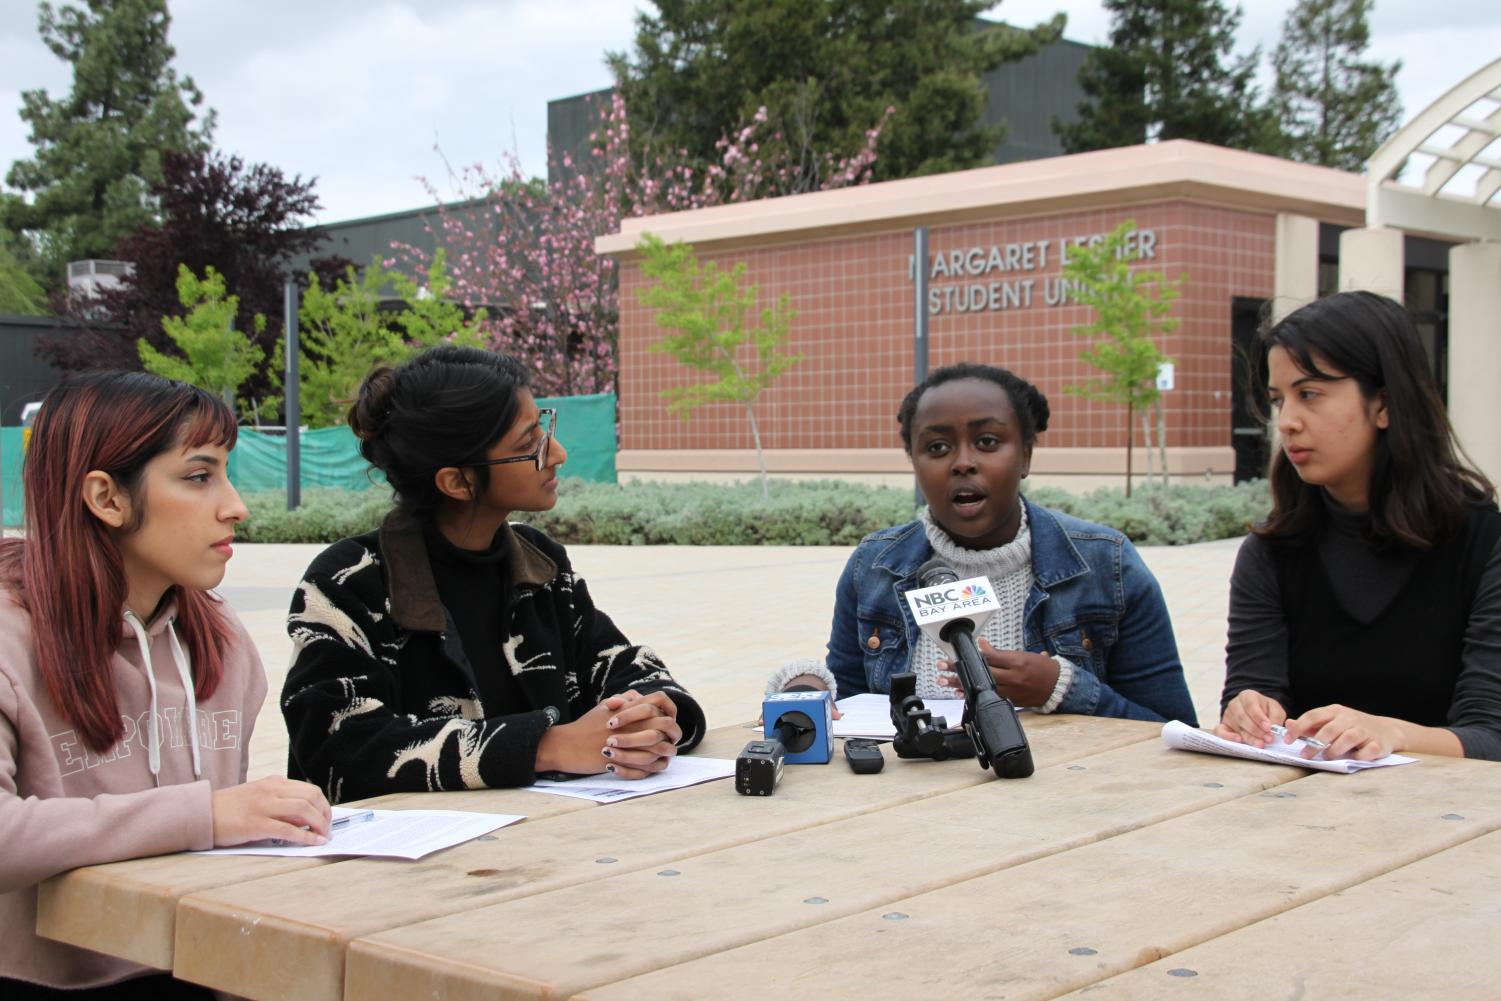 Marisol Militello, Soha Ashraf, Silvia Gathondu and Allison Morgan, left to right, from the Women's Empowerment Club hold a press conference detailing their grievances about the handling of alleged harassment from former student Gautam Reddy.